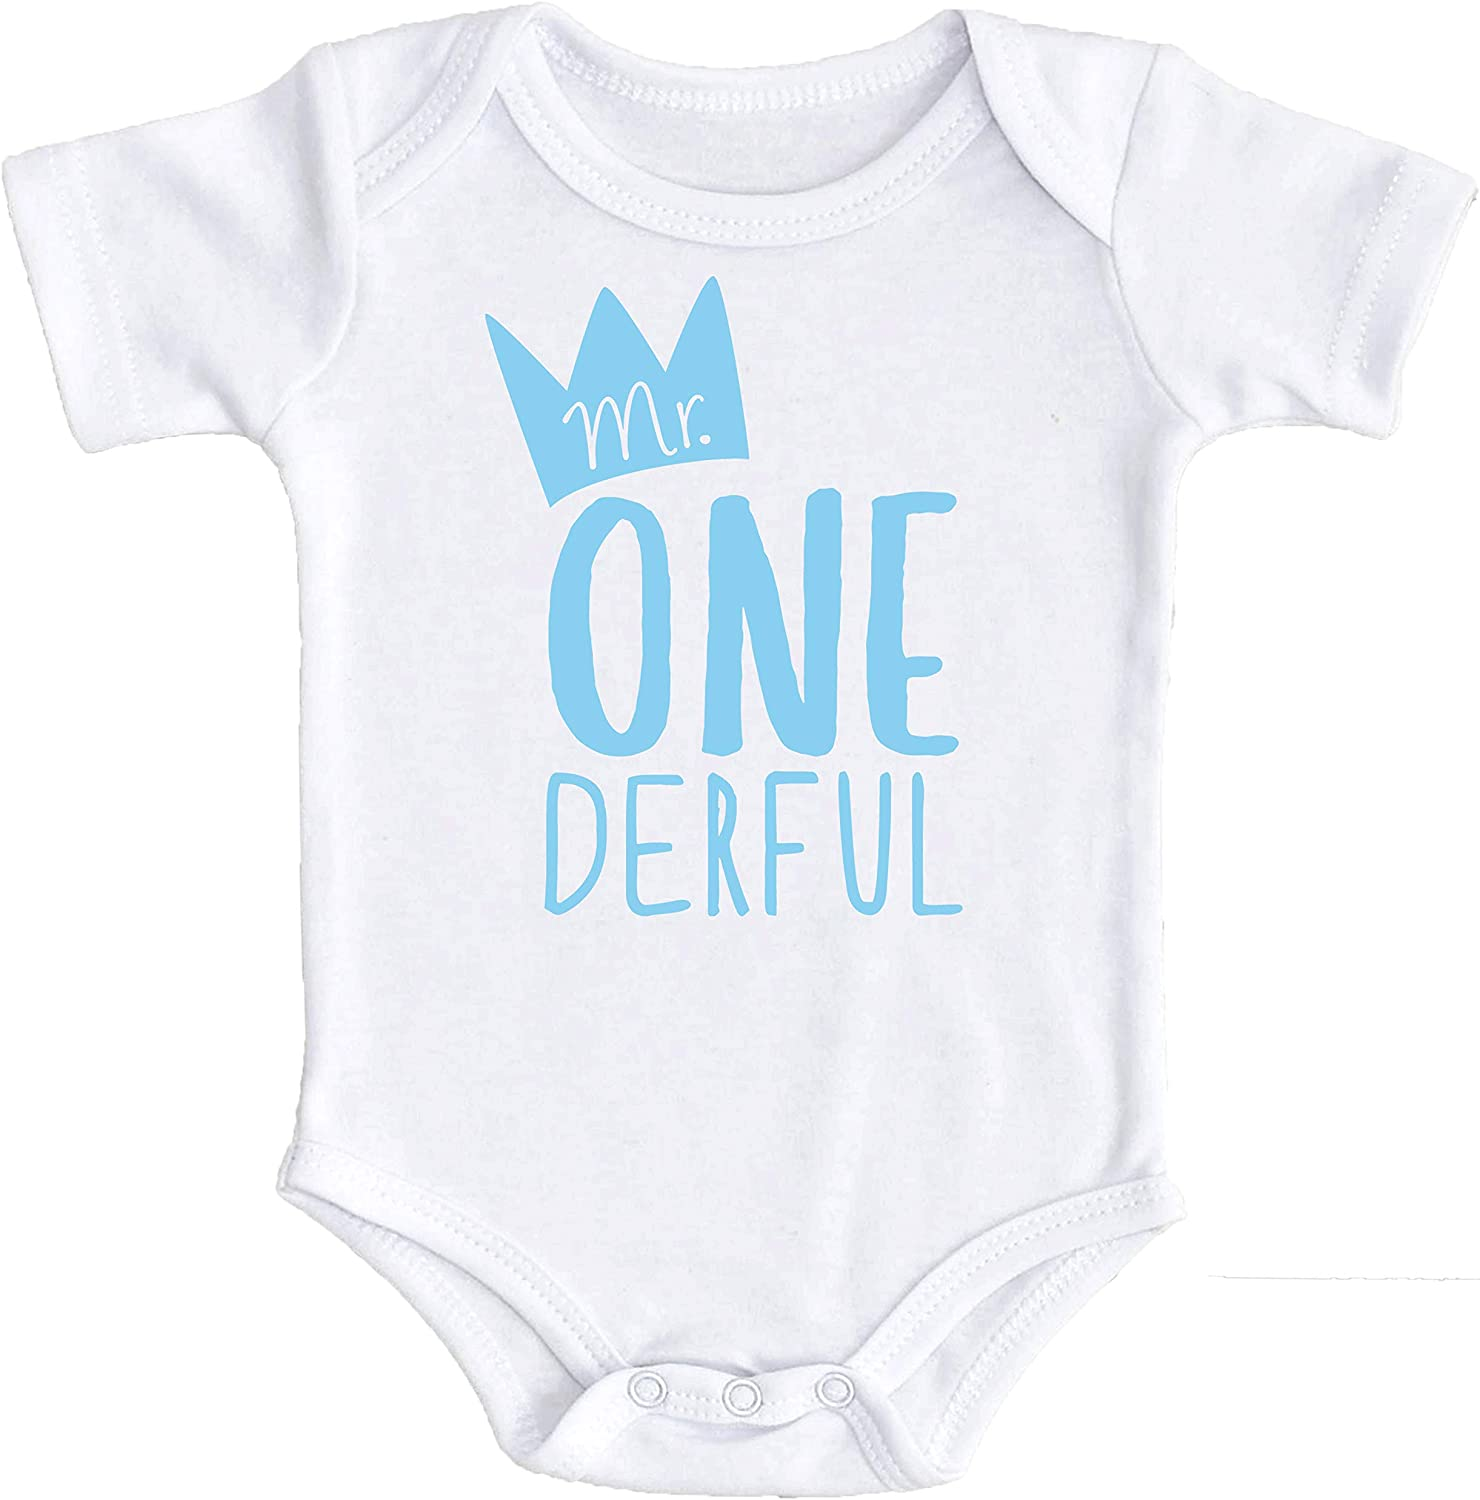 Mr One-Derful Baby Boys 1st Birthday Outfit First Birthday Bodysuit for Boys 1st Birthday Mr. Onederful